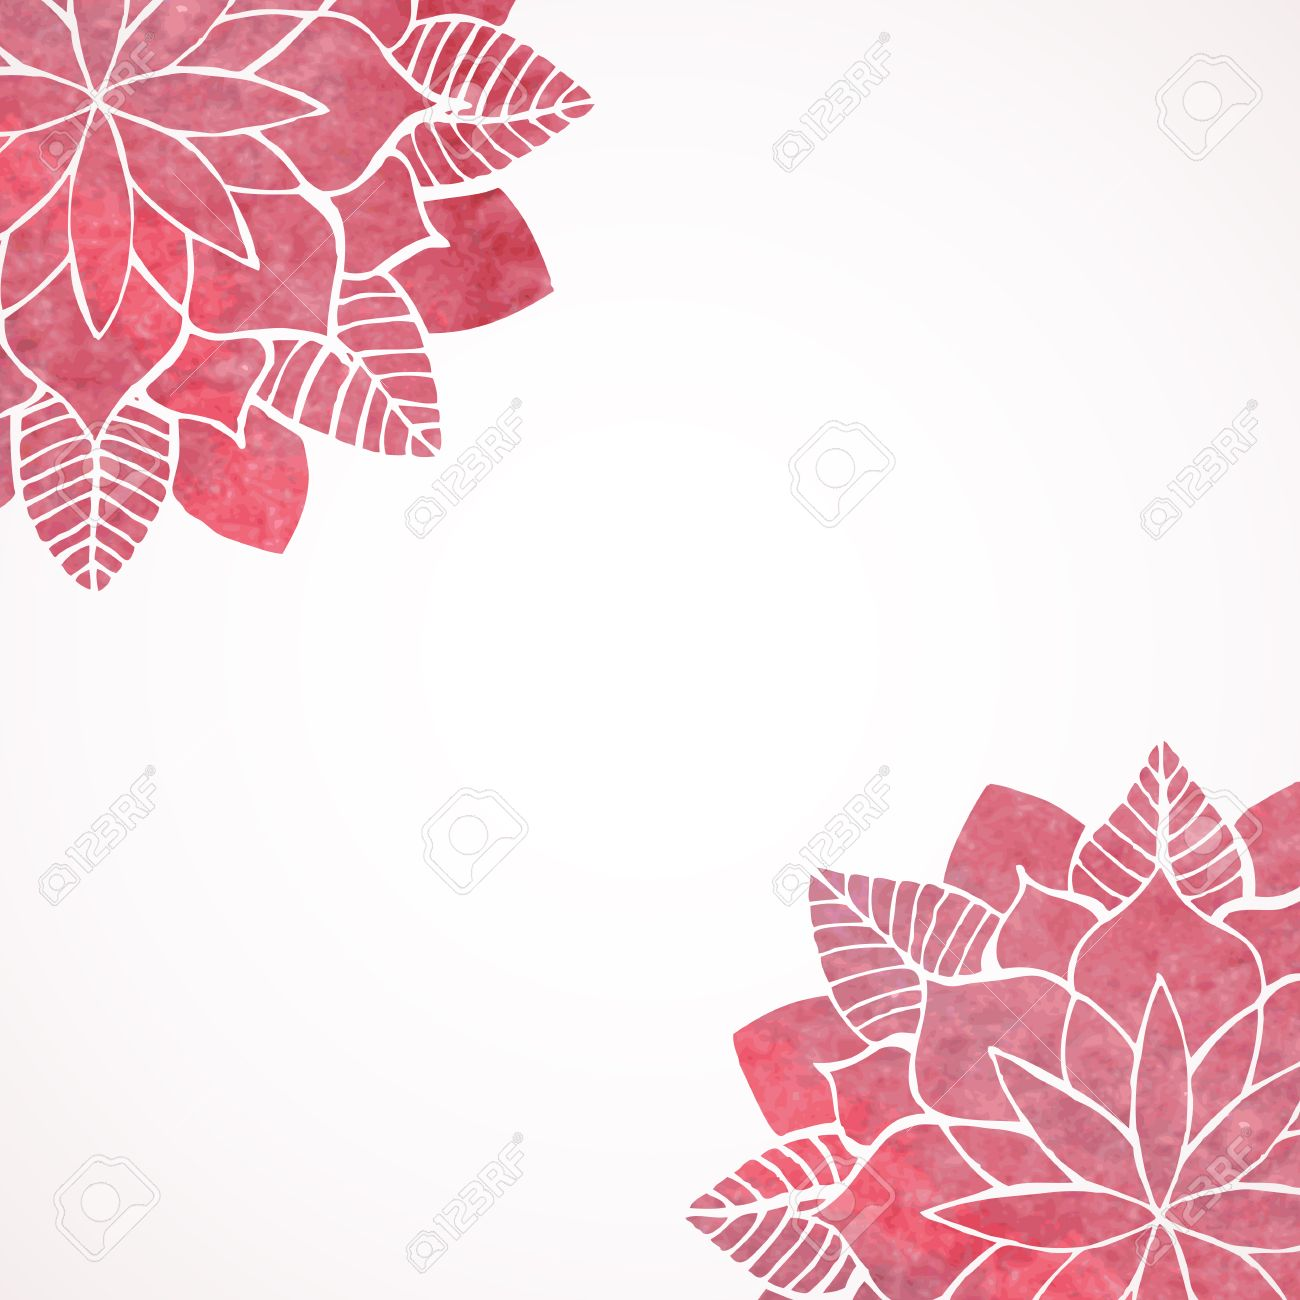 Watercolor Pink Lace Floral Patterns On White Background Geometric